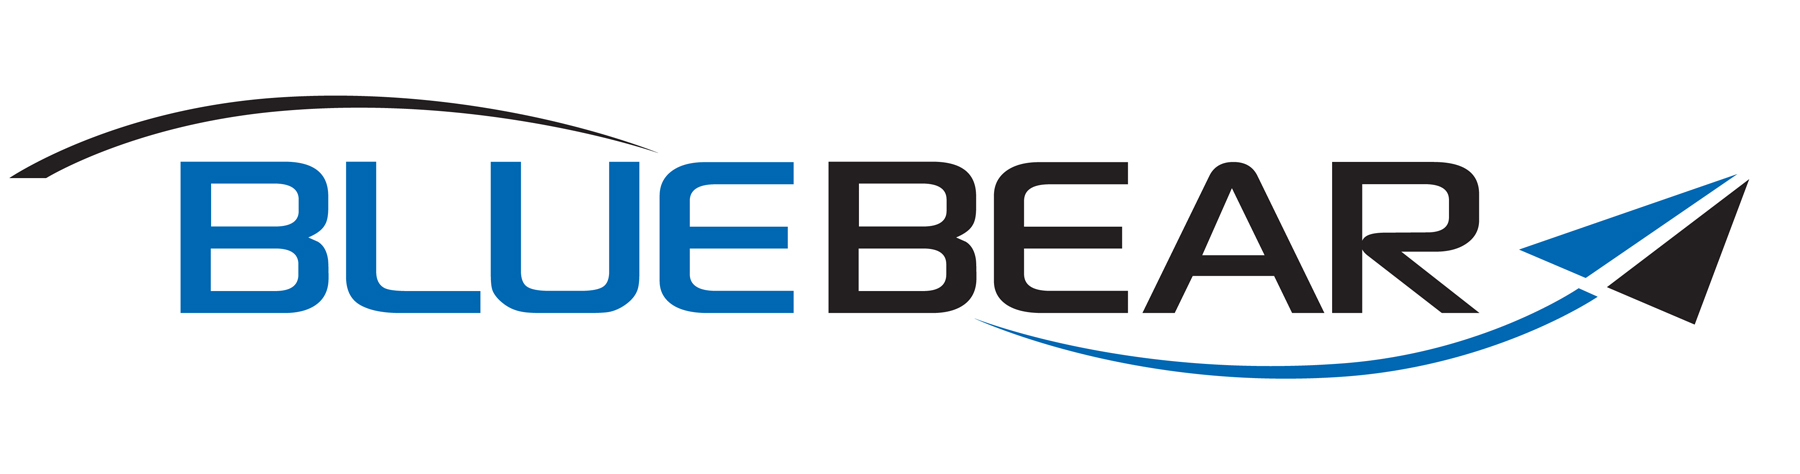 Blue Bear Systems Research logo